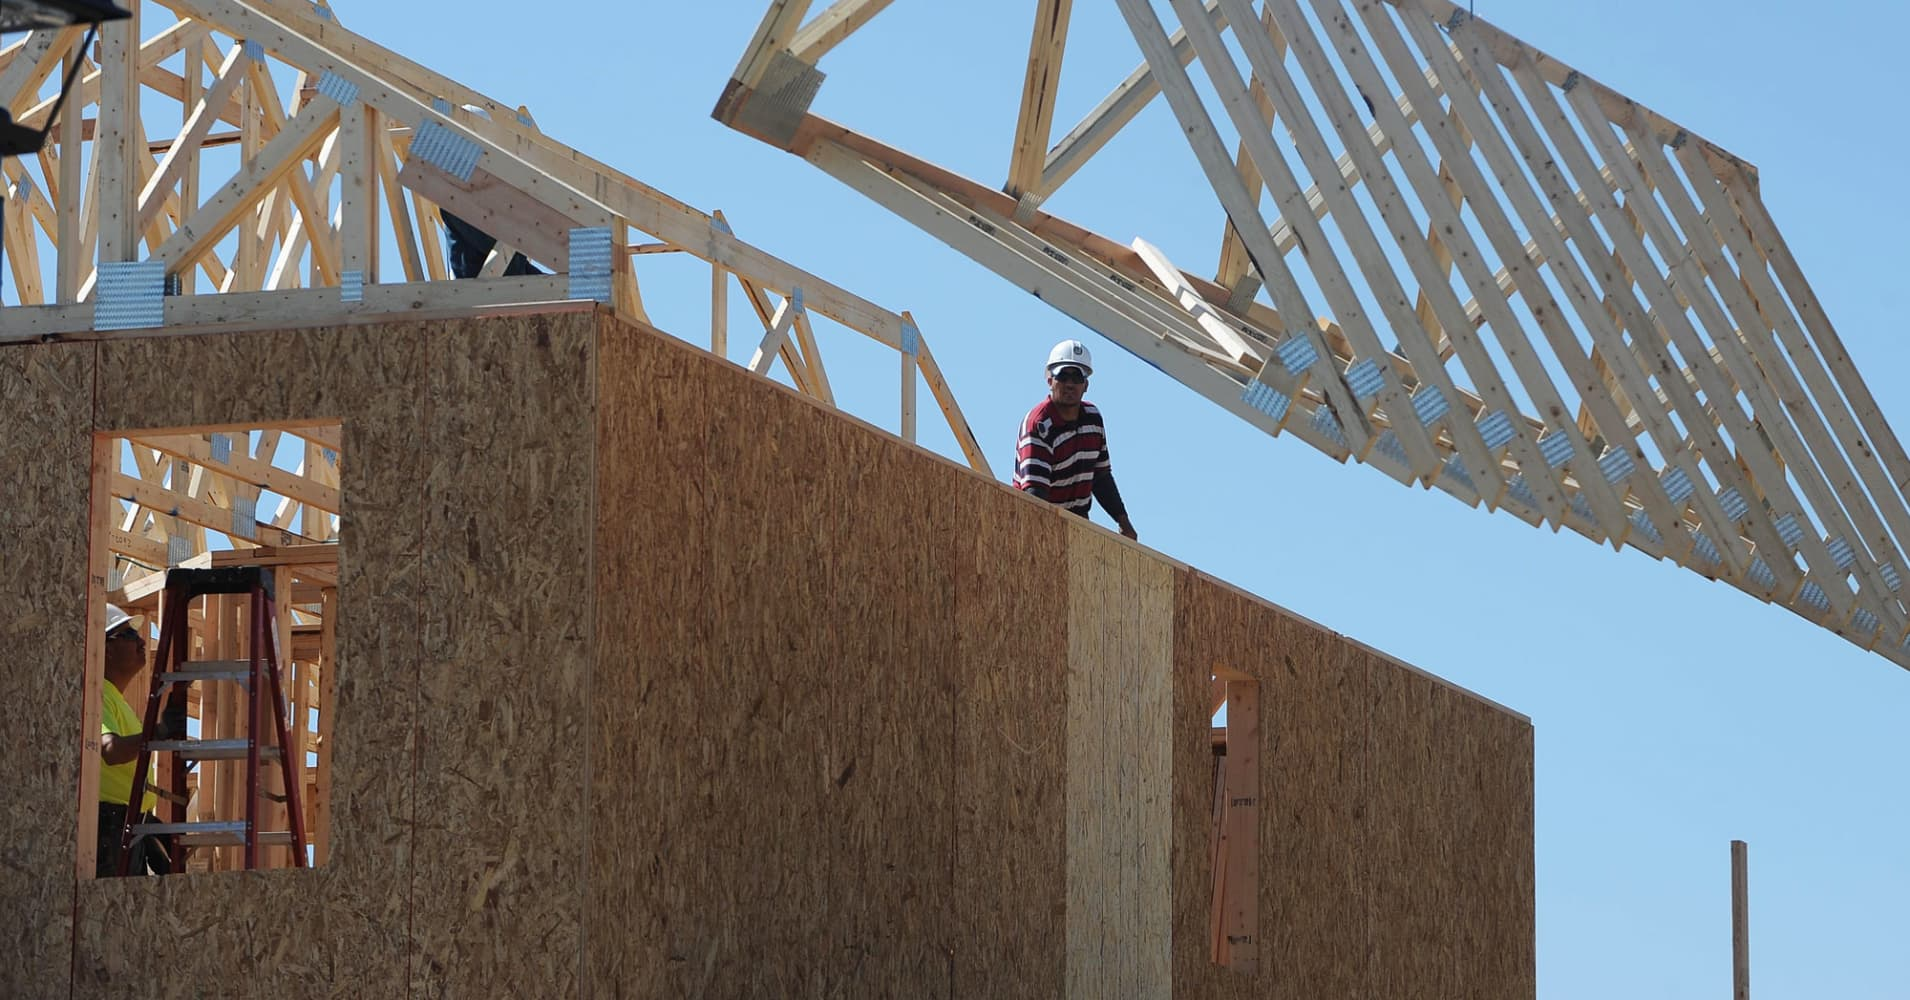 Homebuilder confidence pulls back by 2 points in January after election euphoria